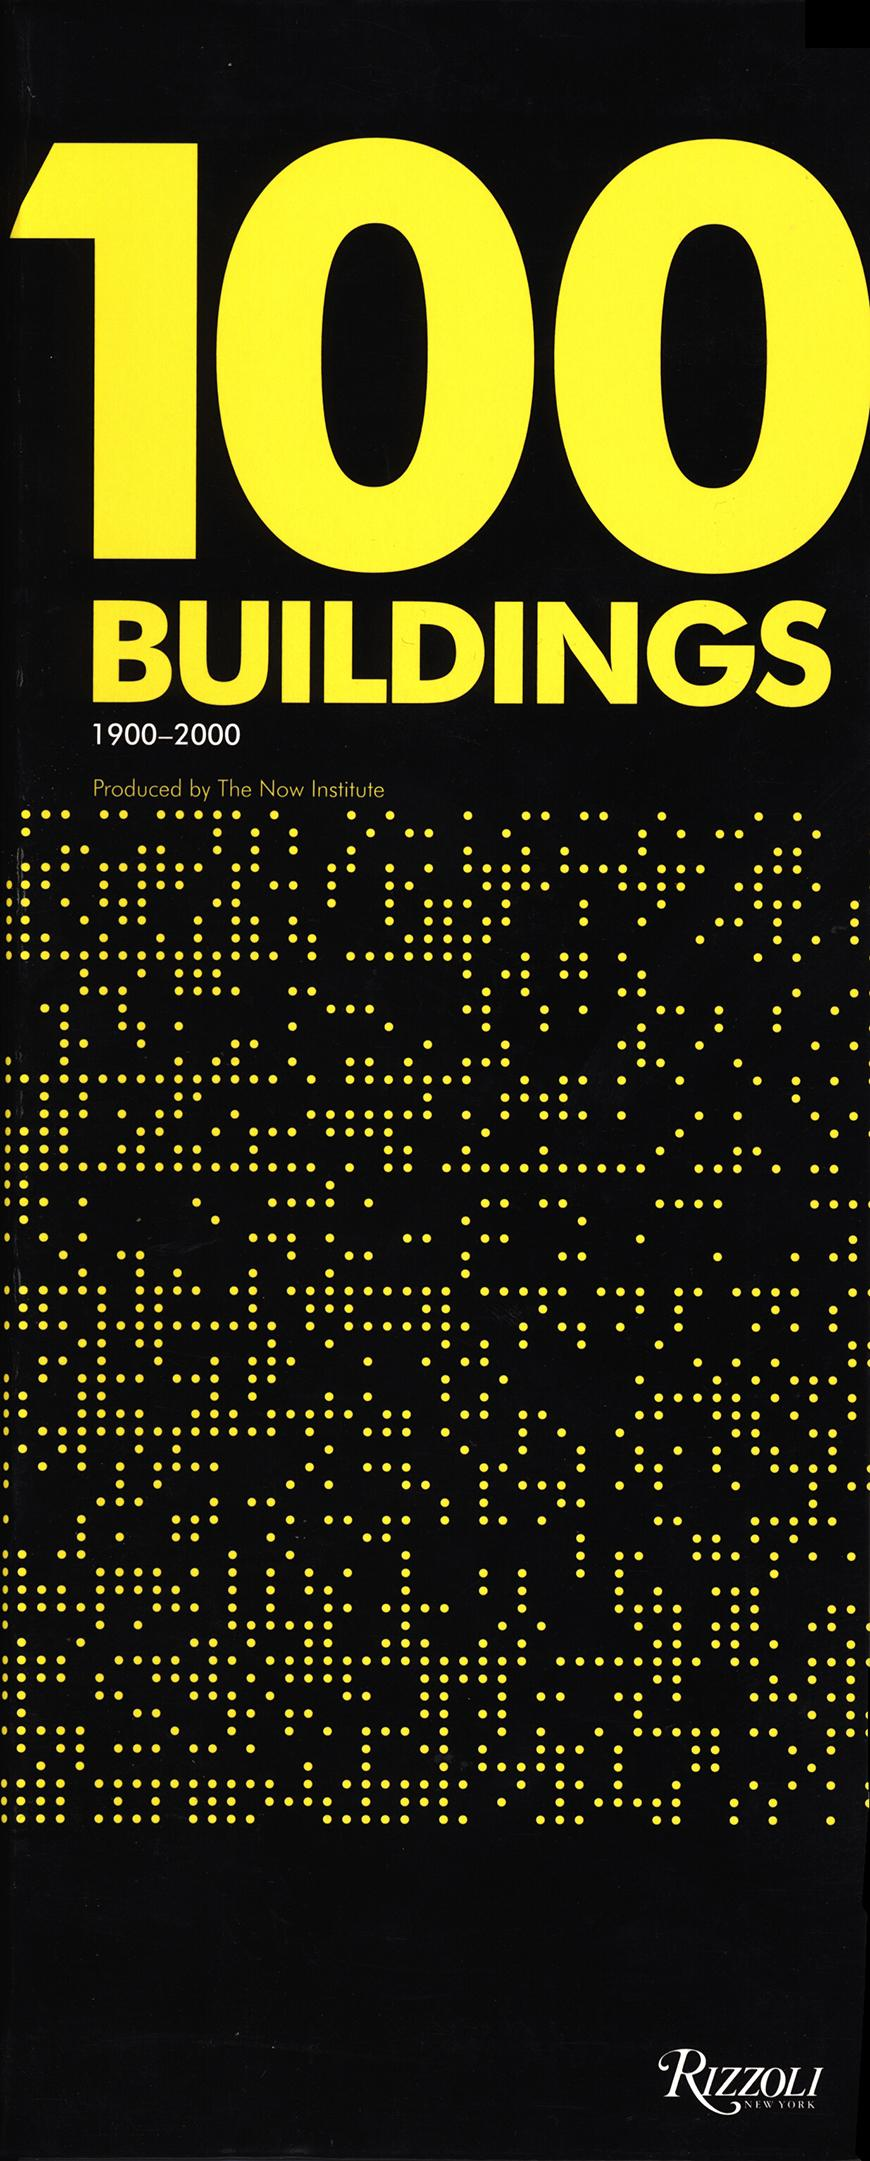 book cover 100 buildings bright yellow lettering over yellow and black geometric design